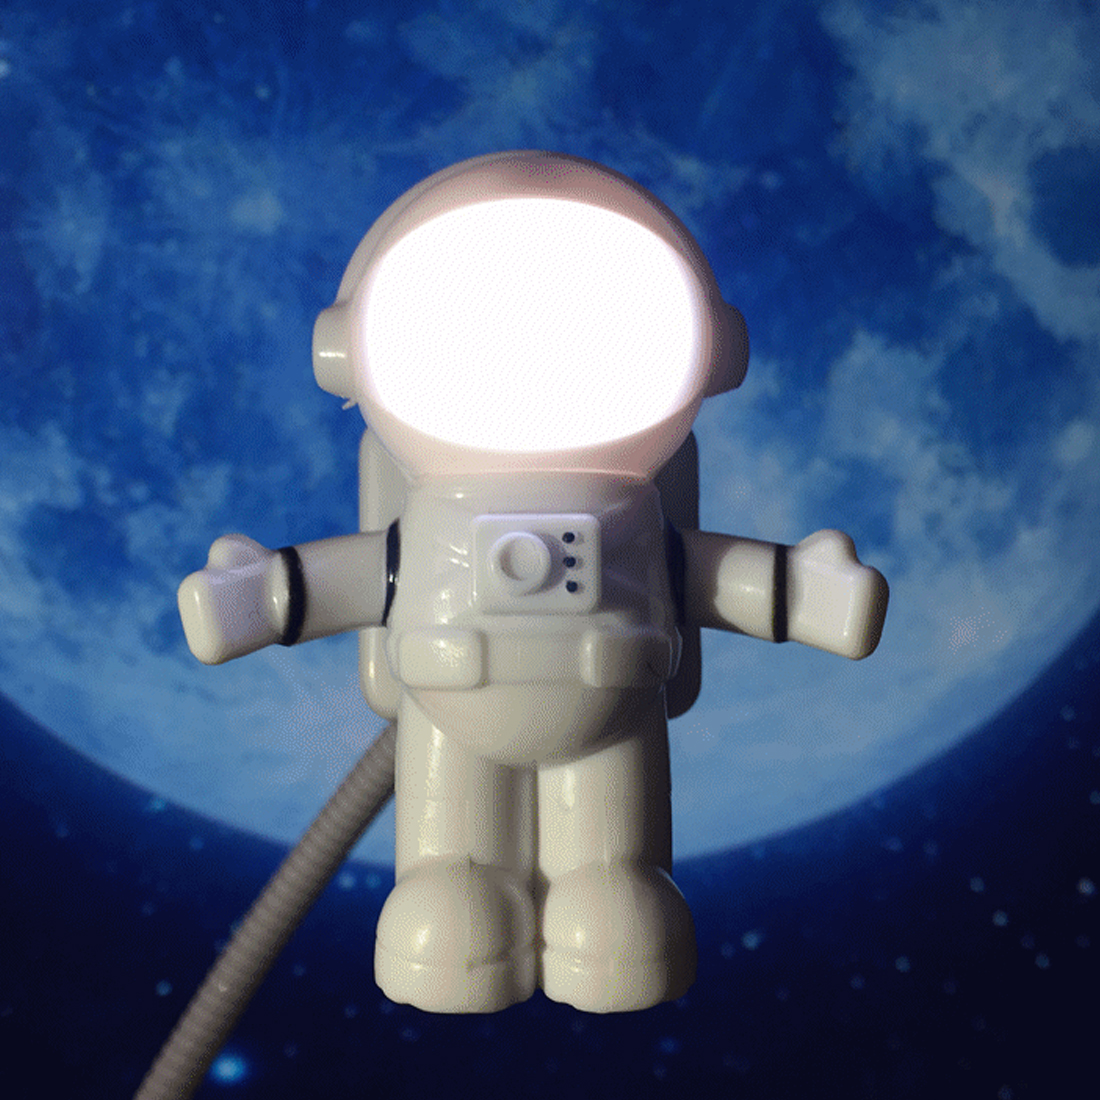 Funny Astronaut USB Gadget Spaceman USB LED Light Adjustable Night Light Gadgets for Computer PC Lamp